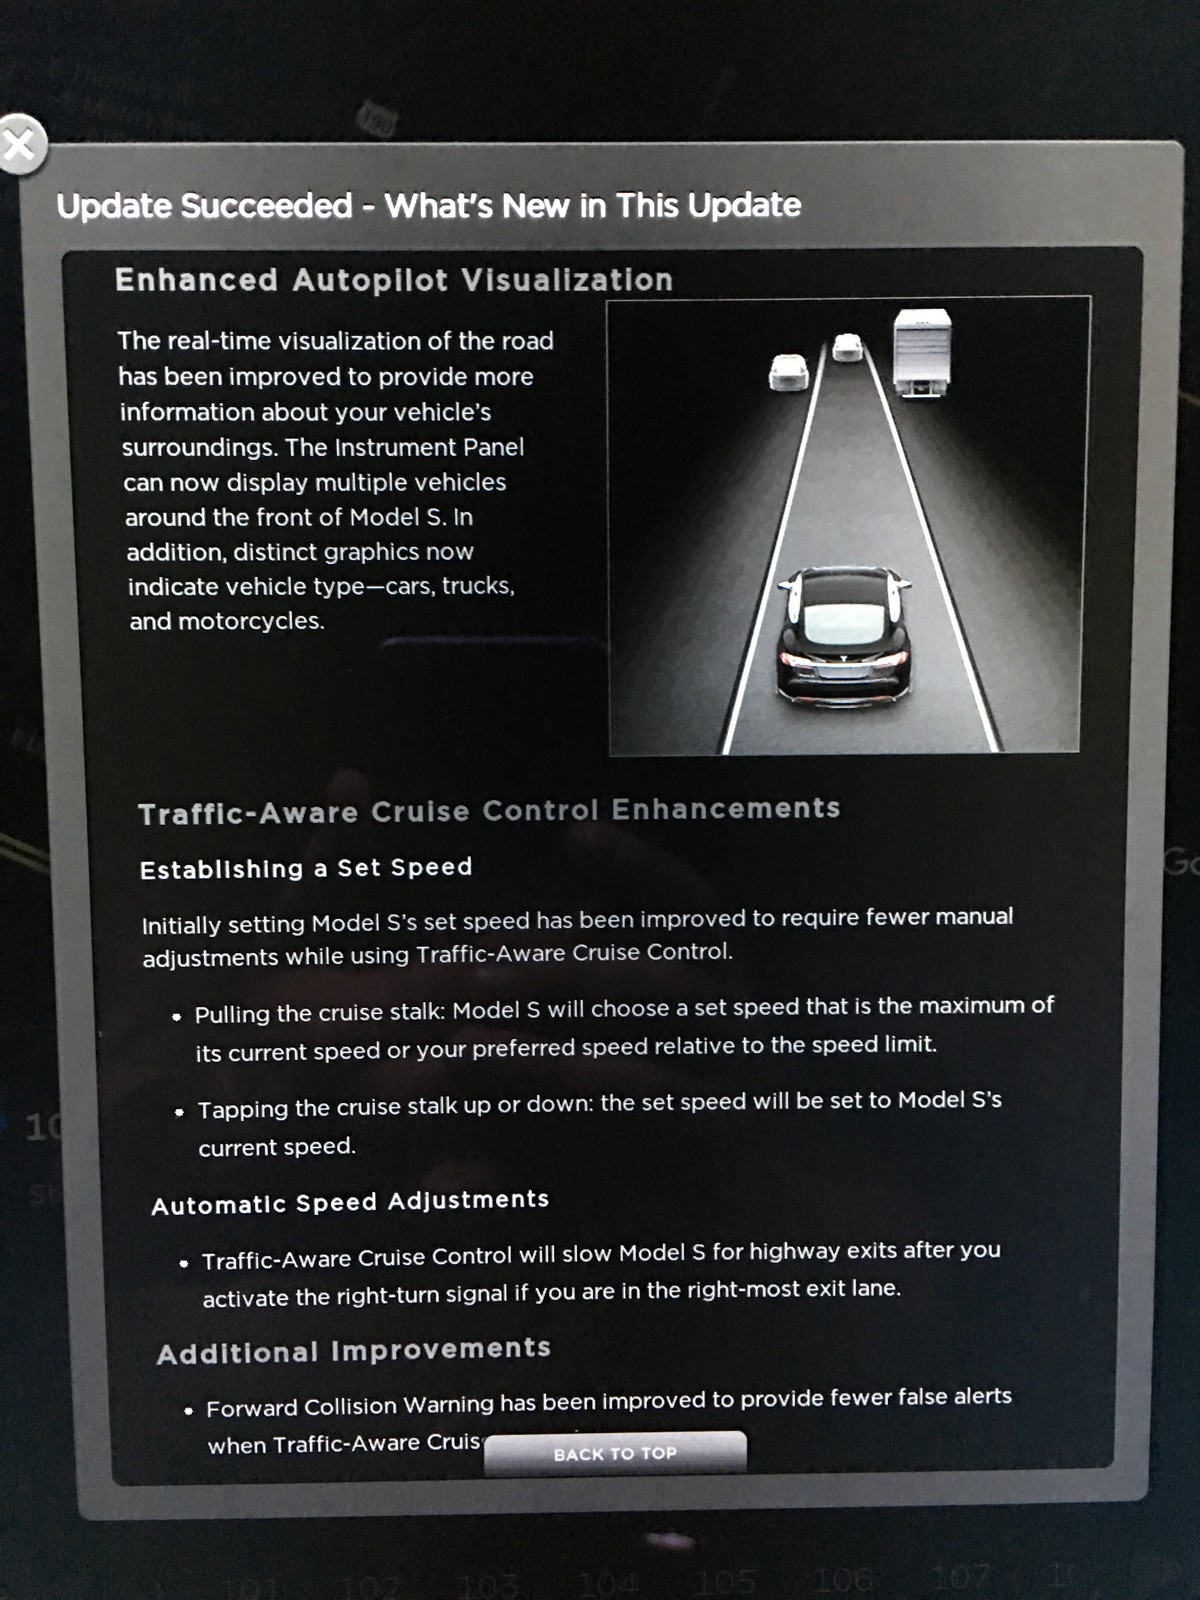 Tesla v7.1 enhanced Autopilot visualization